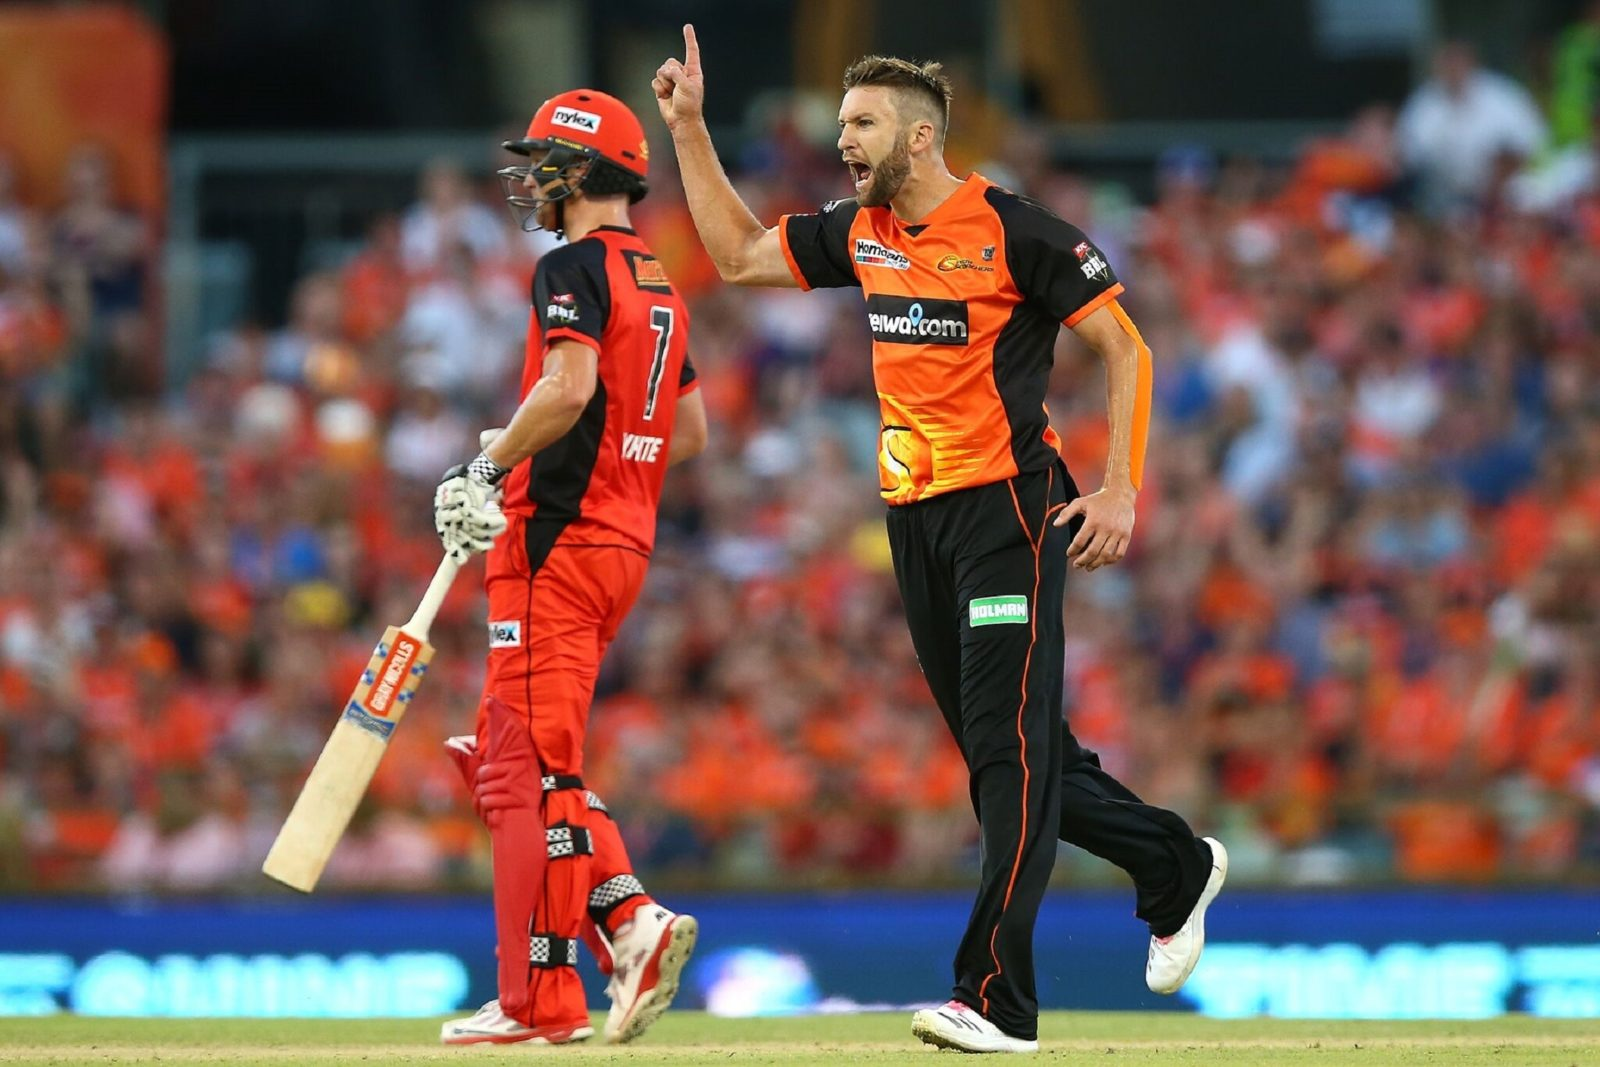 Big Bash League - Perth Scorchers vs Melbourne Renegades, Burswood, Western Australia